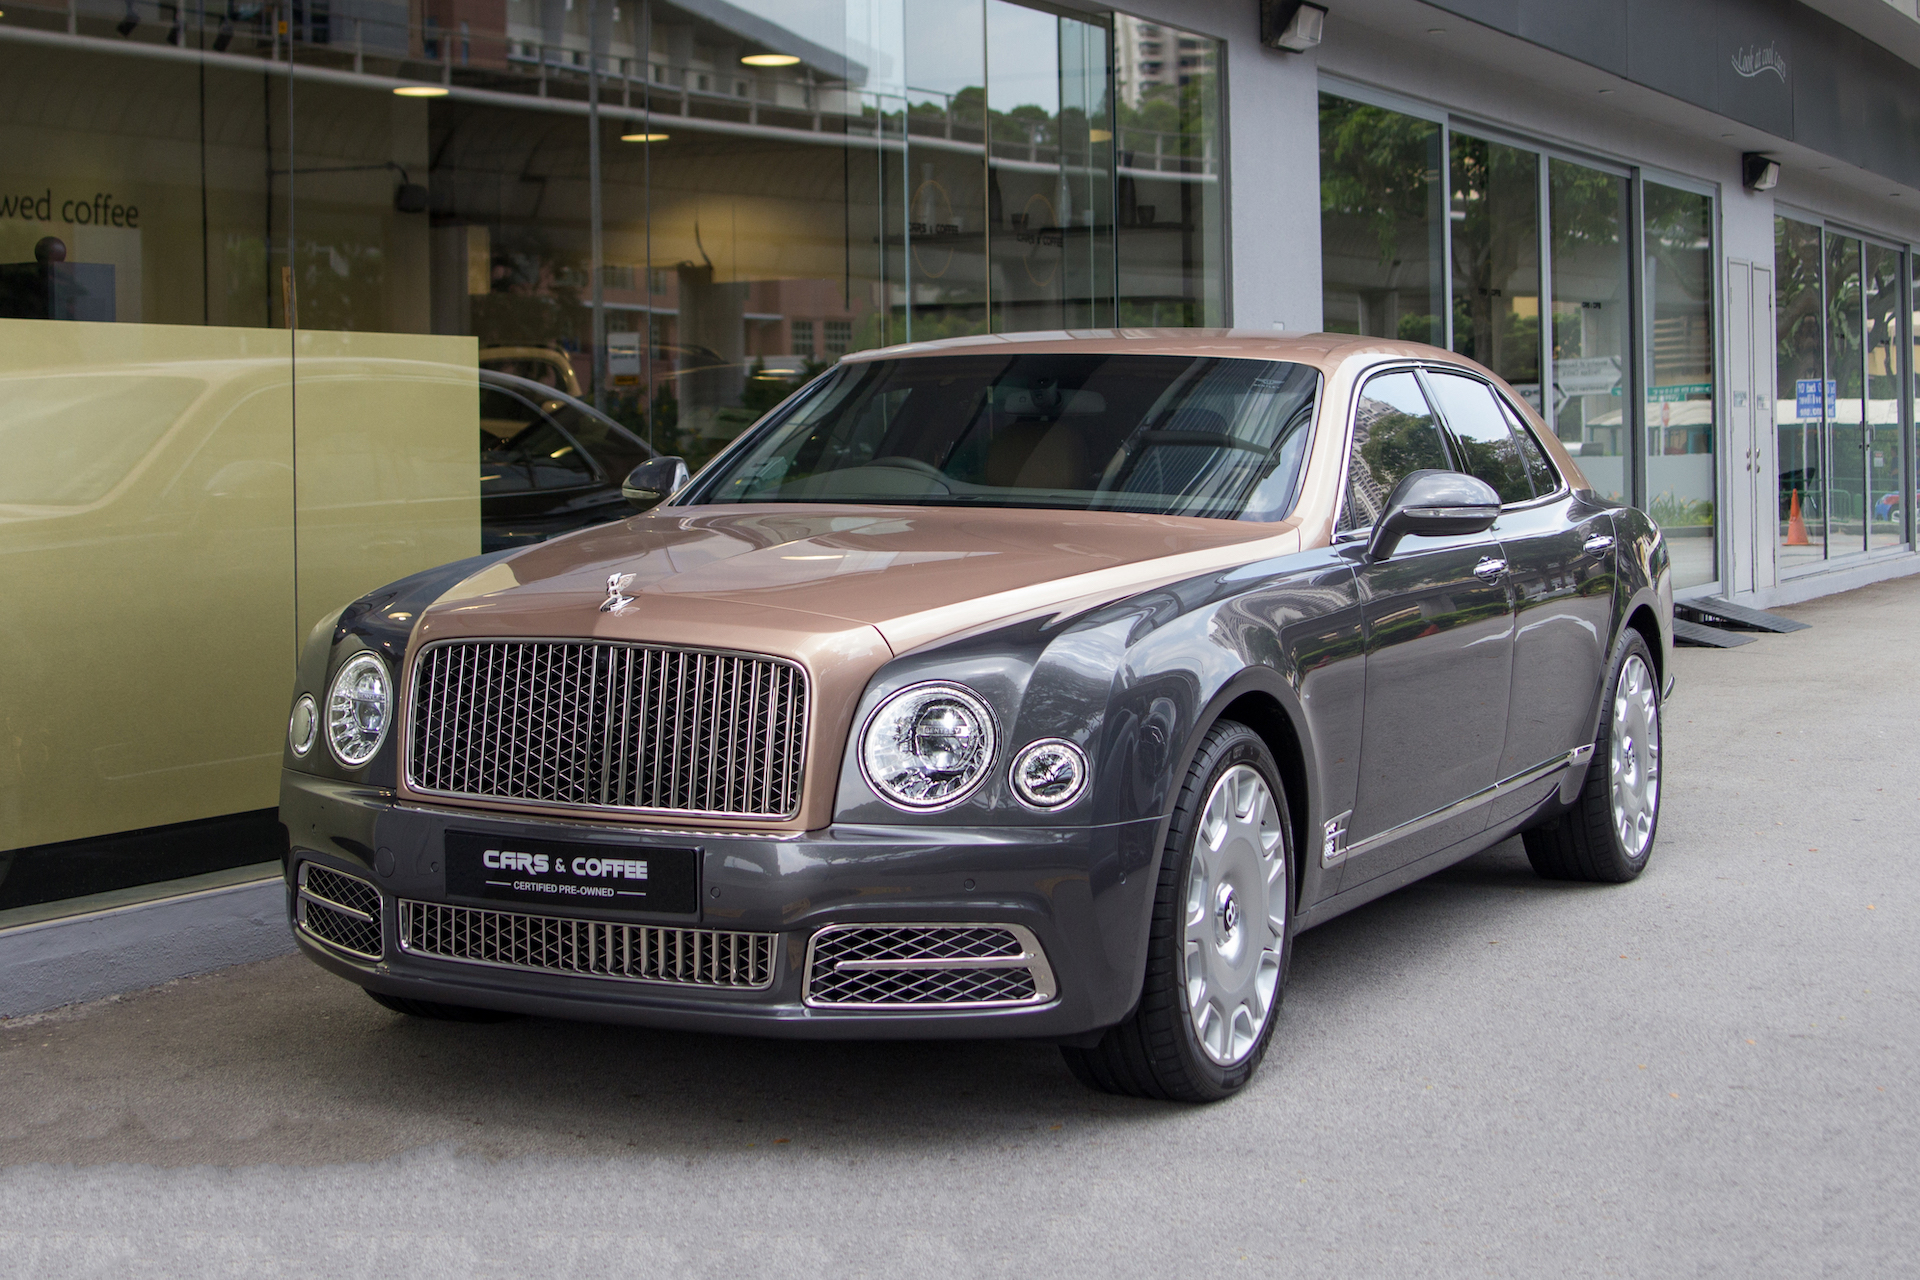 Certified Pre-Owned Bentley Mulsanne 6.75A | Cars and Coffee Singapore